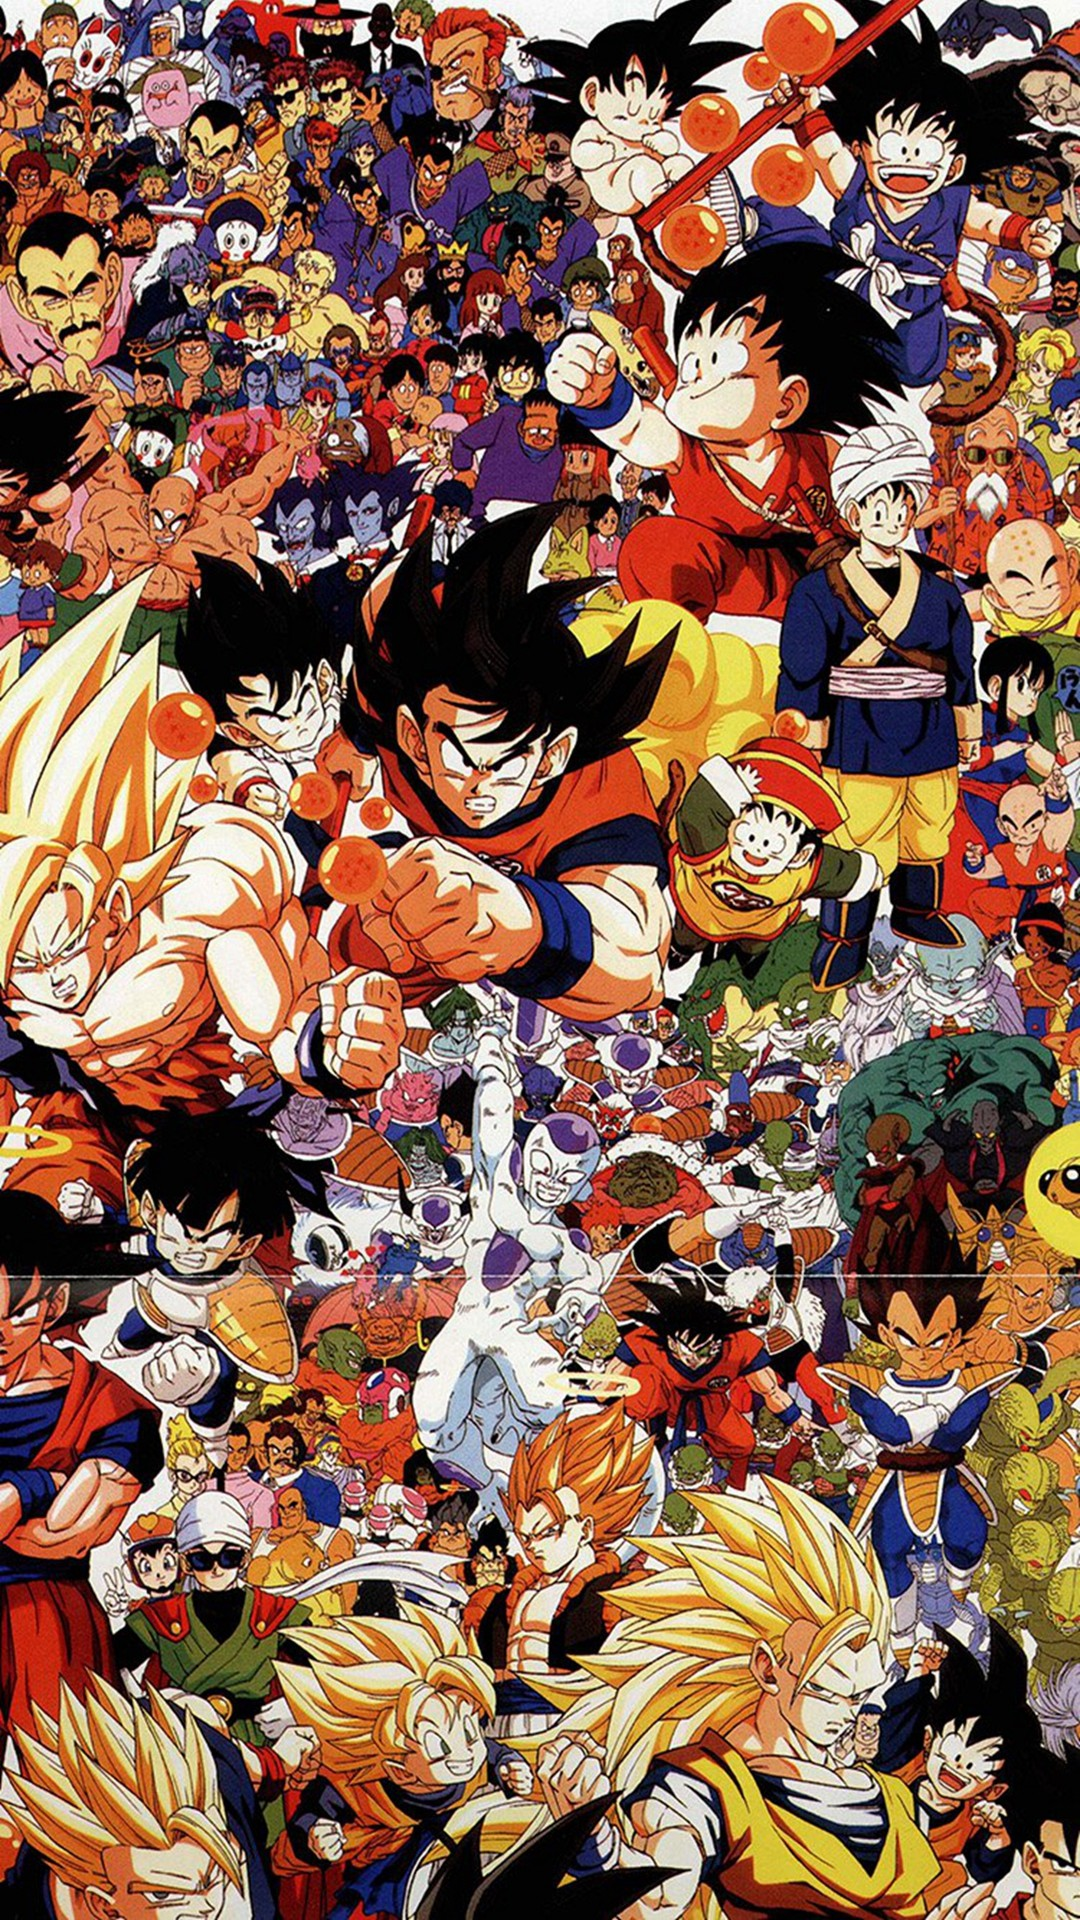 Dragon ball iphone wallpaper 64 images - Anime wallpaper hd iphone 7 ...